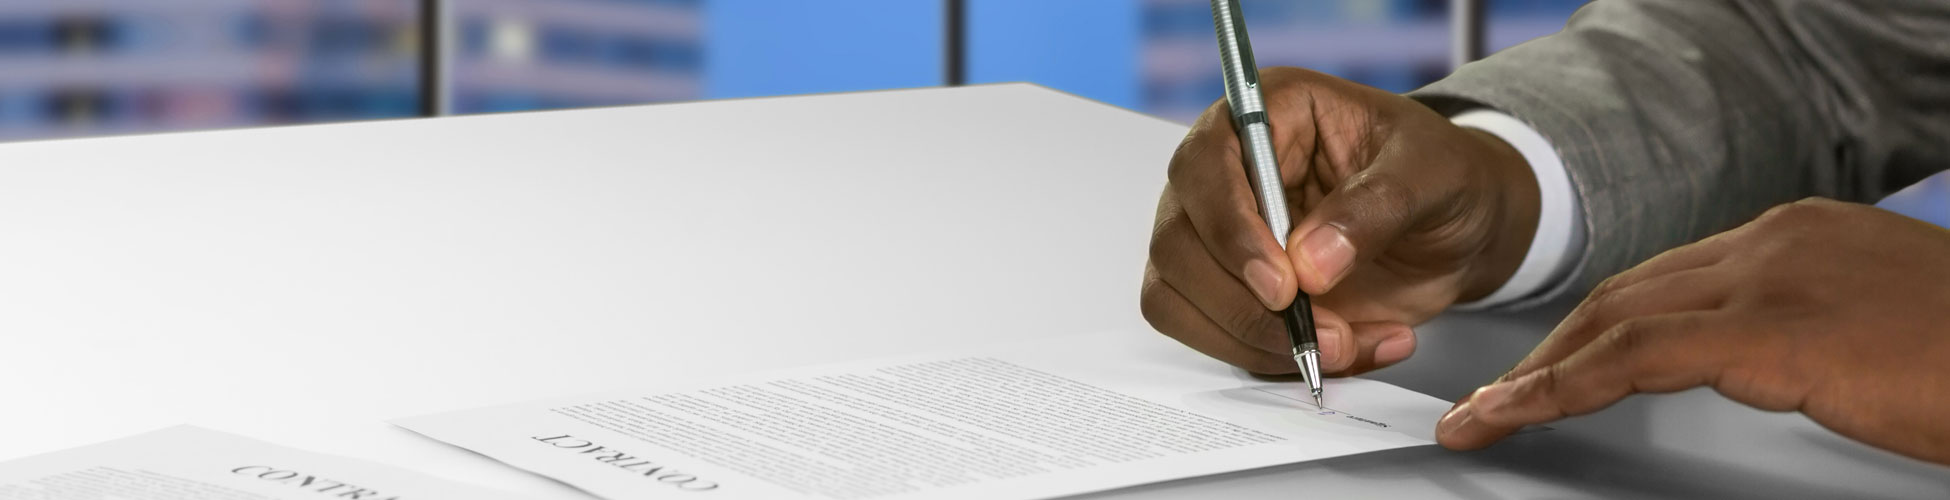 Commercial Transactions & Contract Law Services